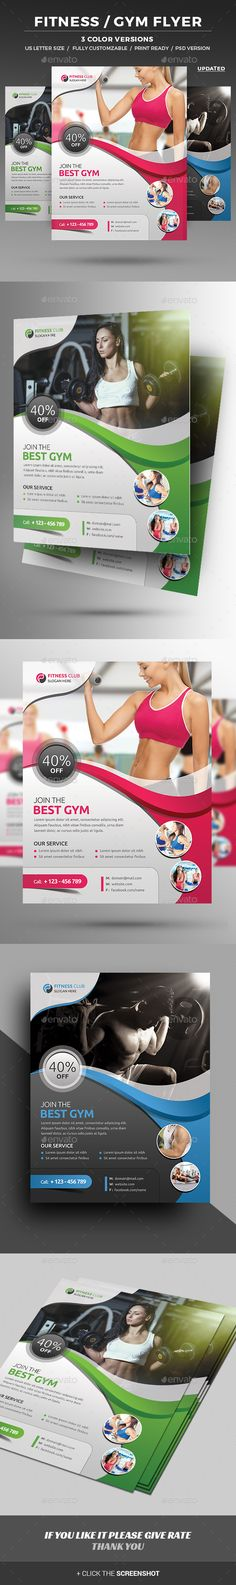 Fitness Flyer - Sports Events - PSD - #Club - #Health - #Fitness  #Flyer - #Commerce  I Download: https://graphicriver.net/item/fitness-flyer/11629061?ref=jpixel55